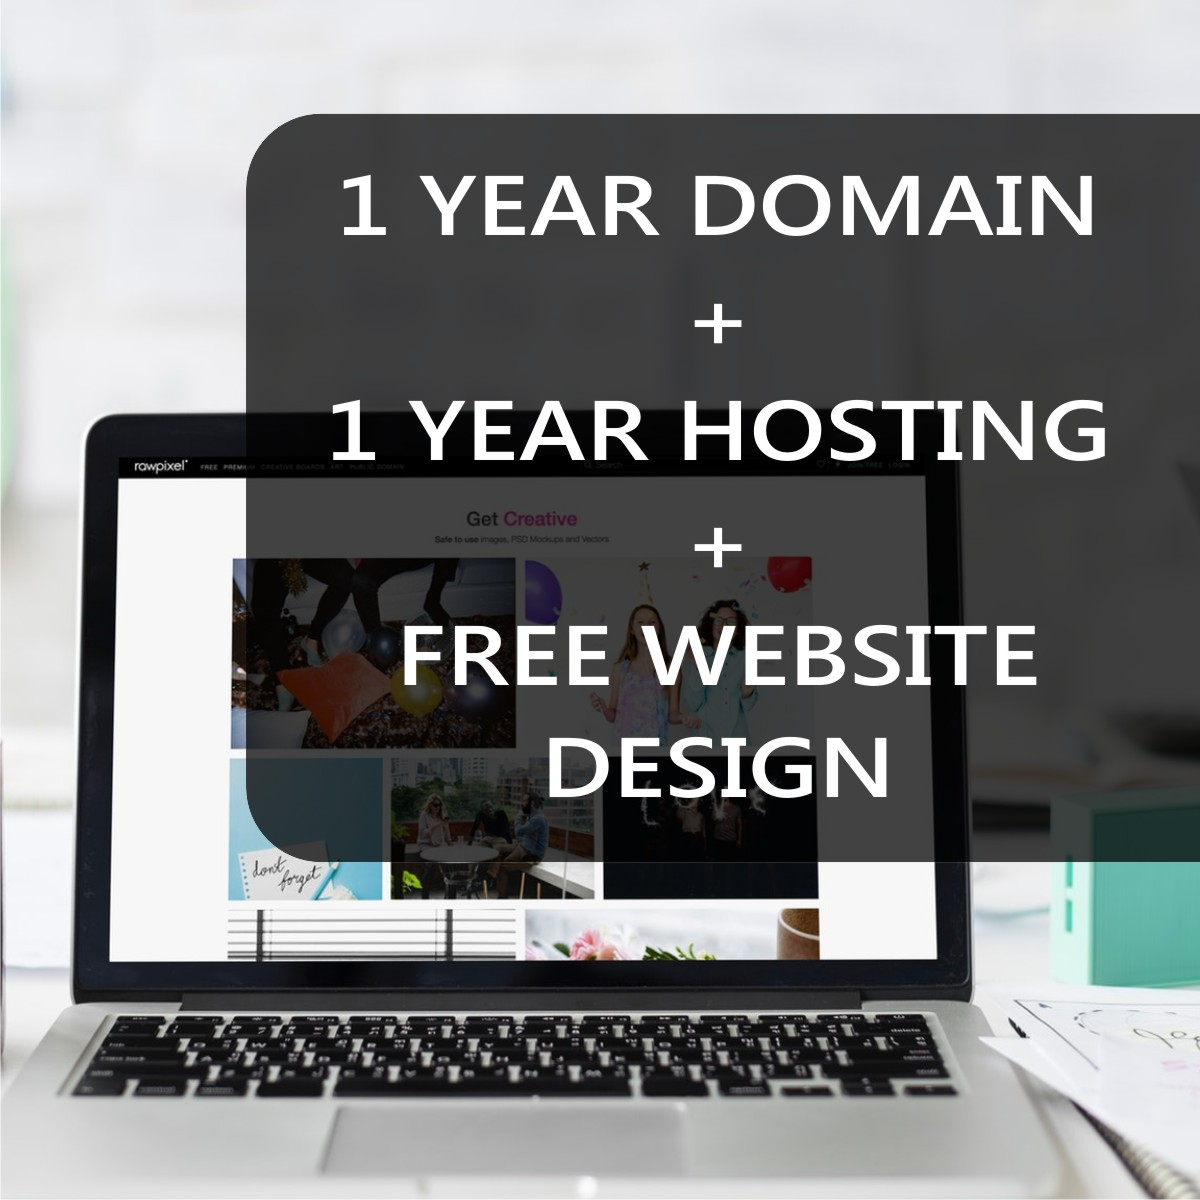 Free Website Design Plus 1 Year Domain And Hosting